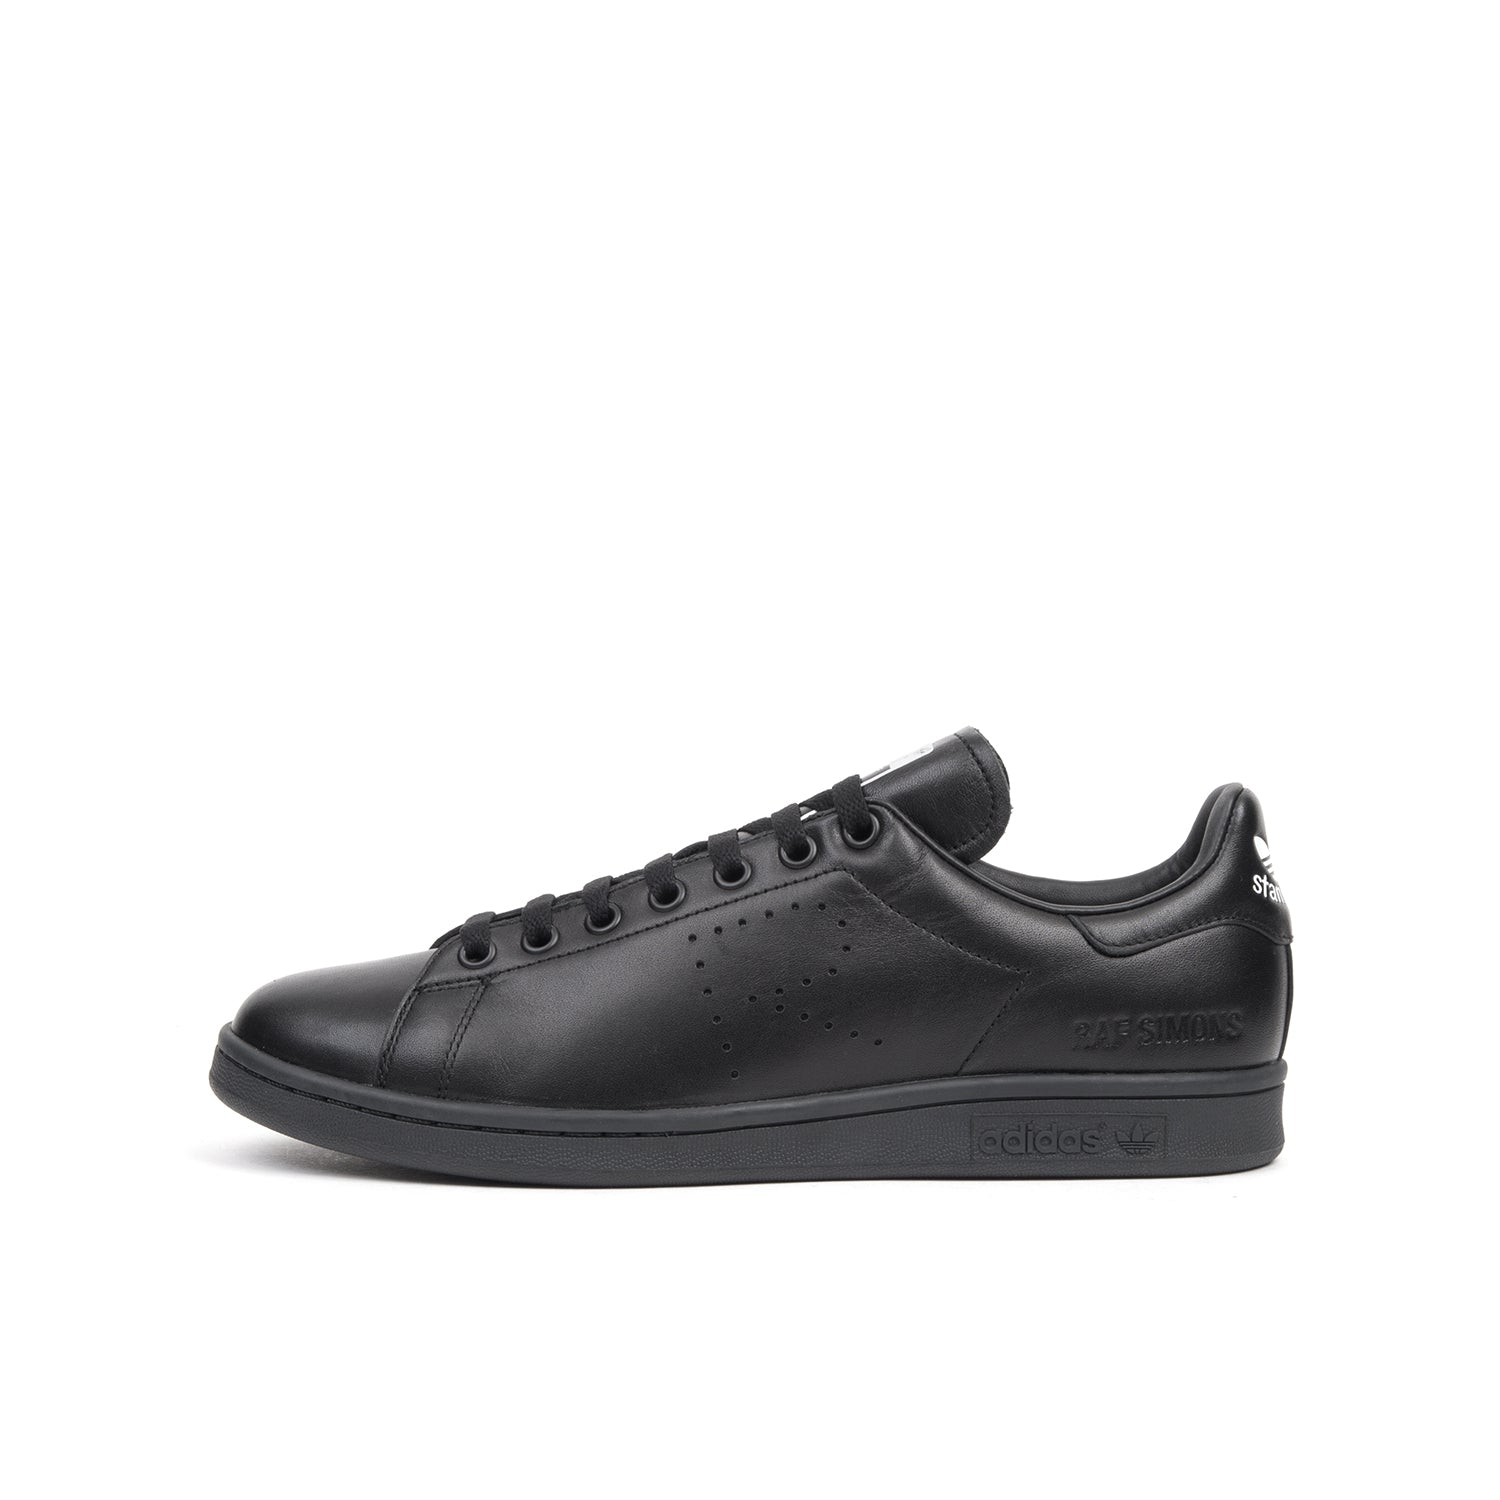 buy popular 978b2 dcf7c adidas x Raf Simons Stan Smith Black